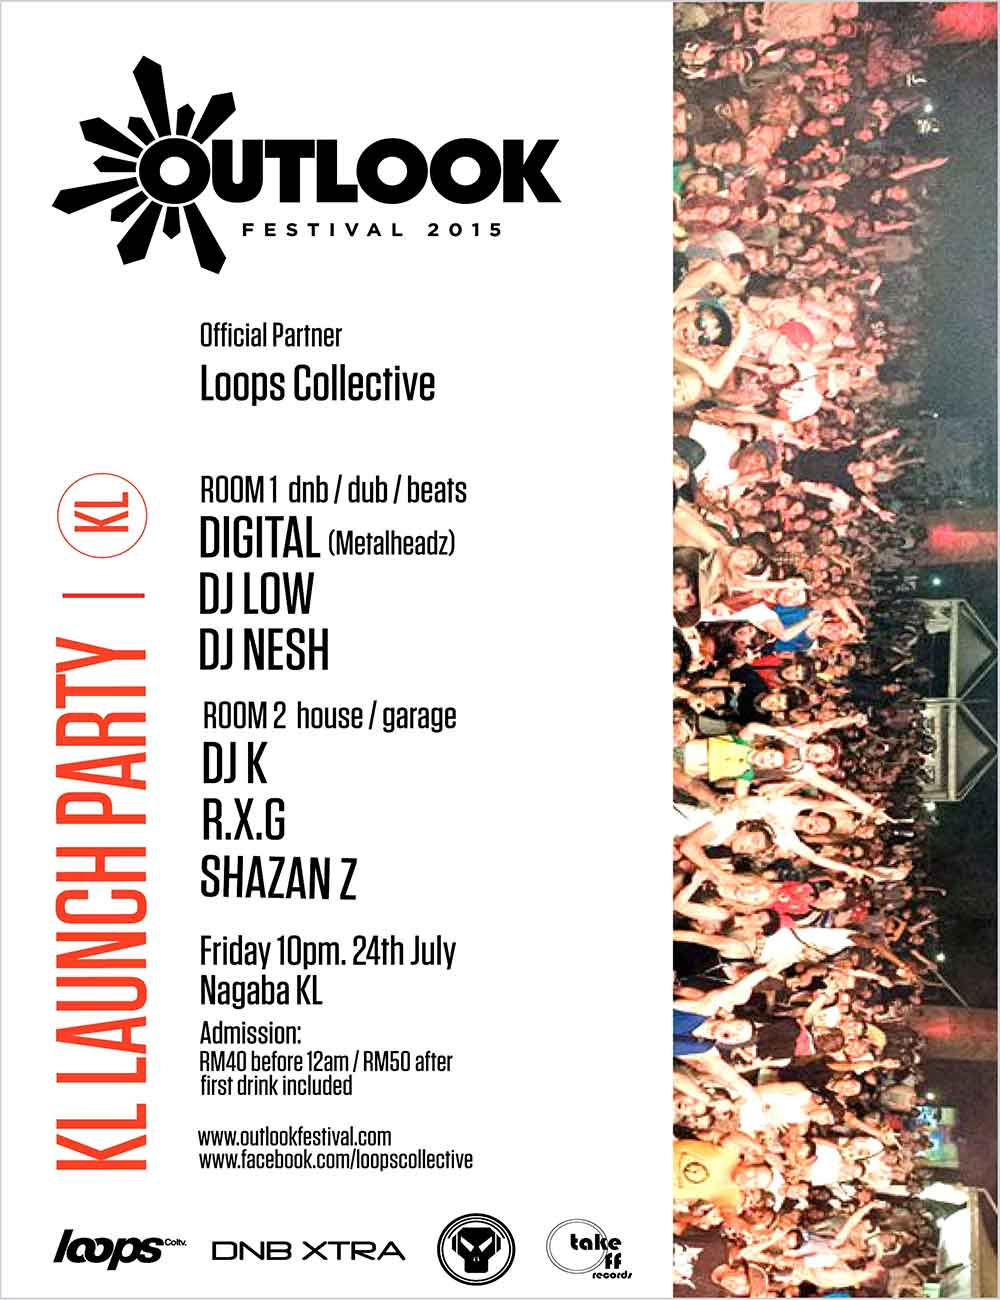 OUTLOOK FESTIVAL LAUNCH PARTY - FEATURING DIGITAL - NAGABA - KUALA LUMPUR